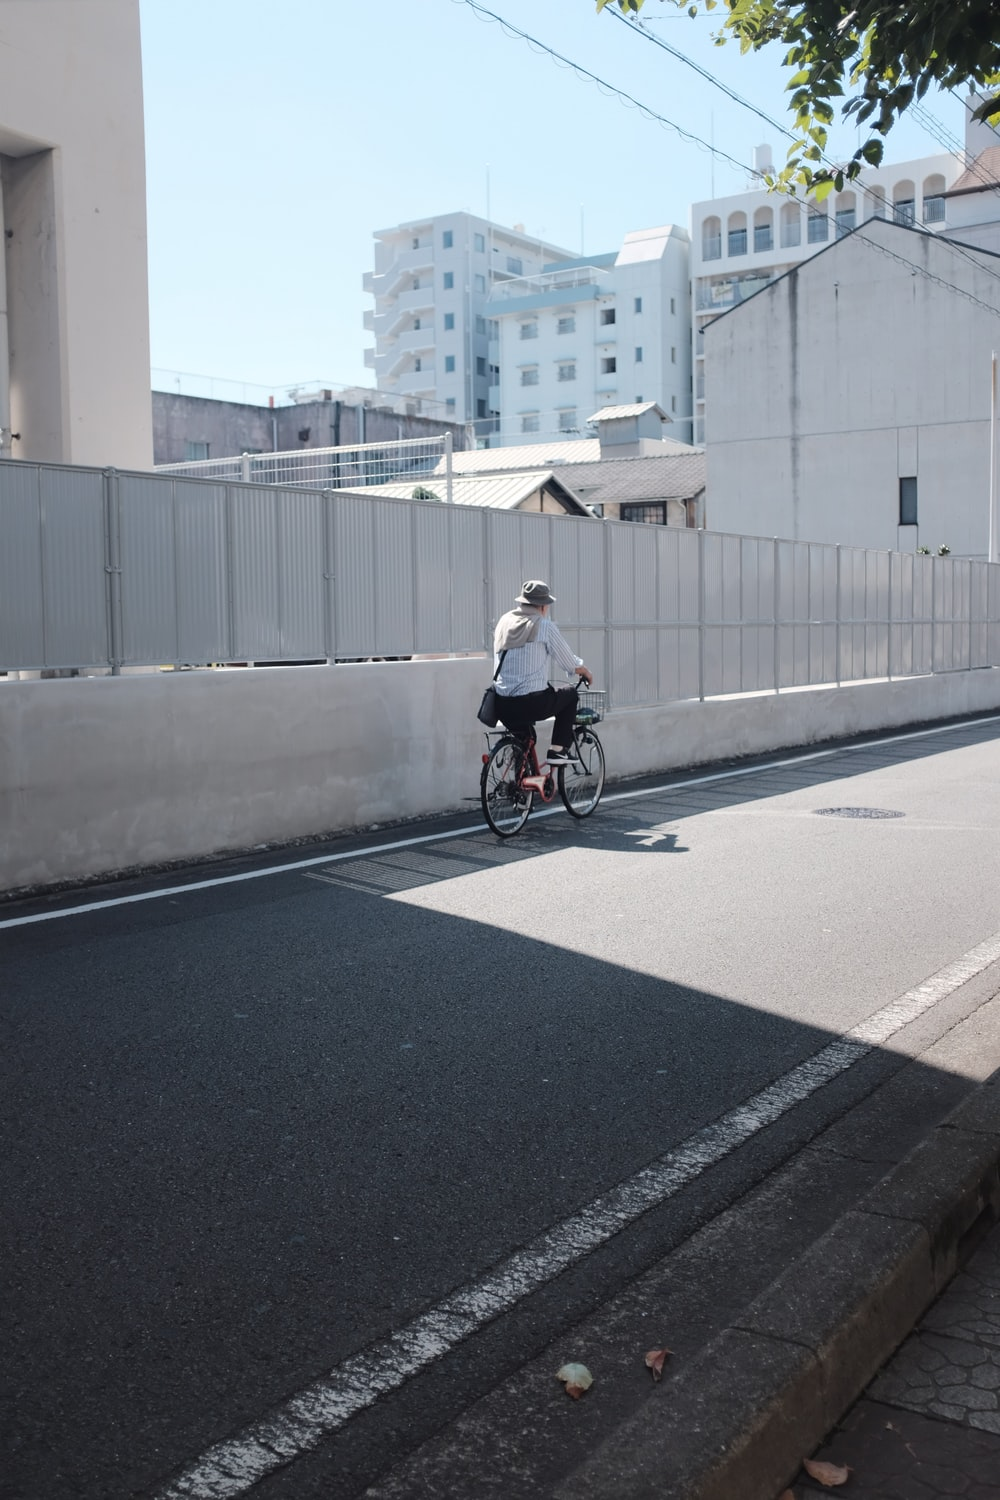 person cycling on road during daytime